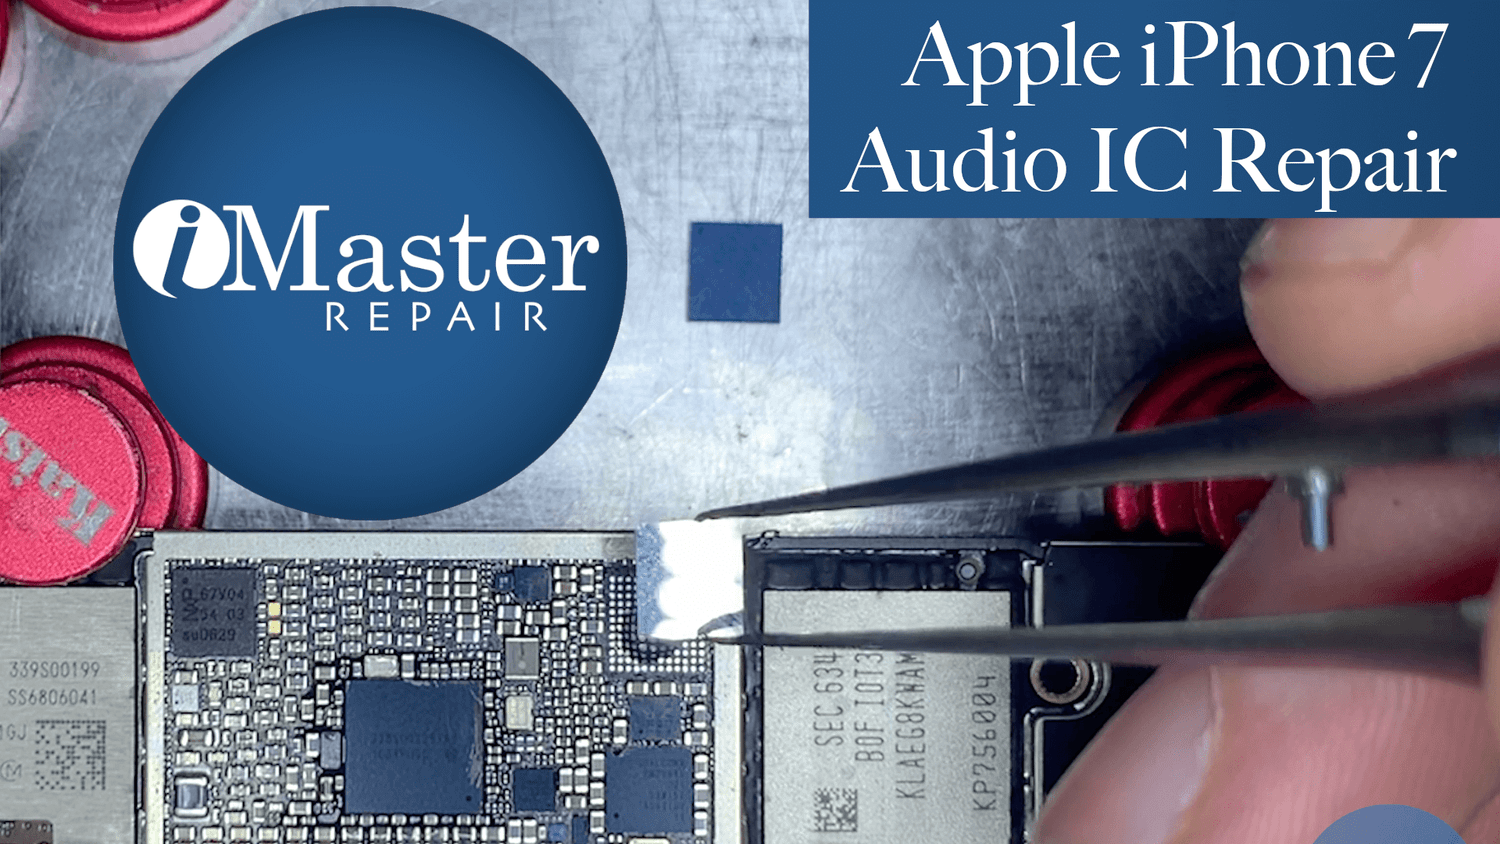 Watch As We Change The Audio IC on an iPhone 7